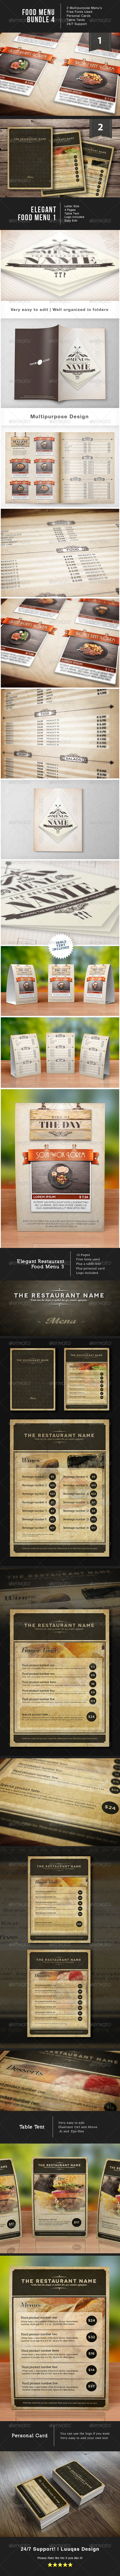 GraphicRiver Food Menu Bundle 4 7084521